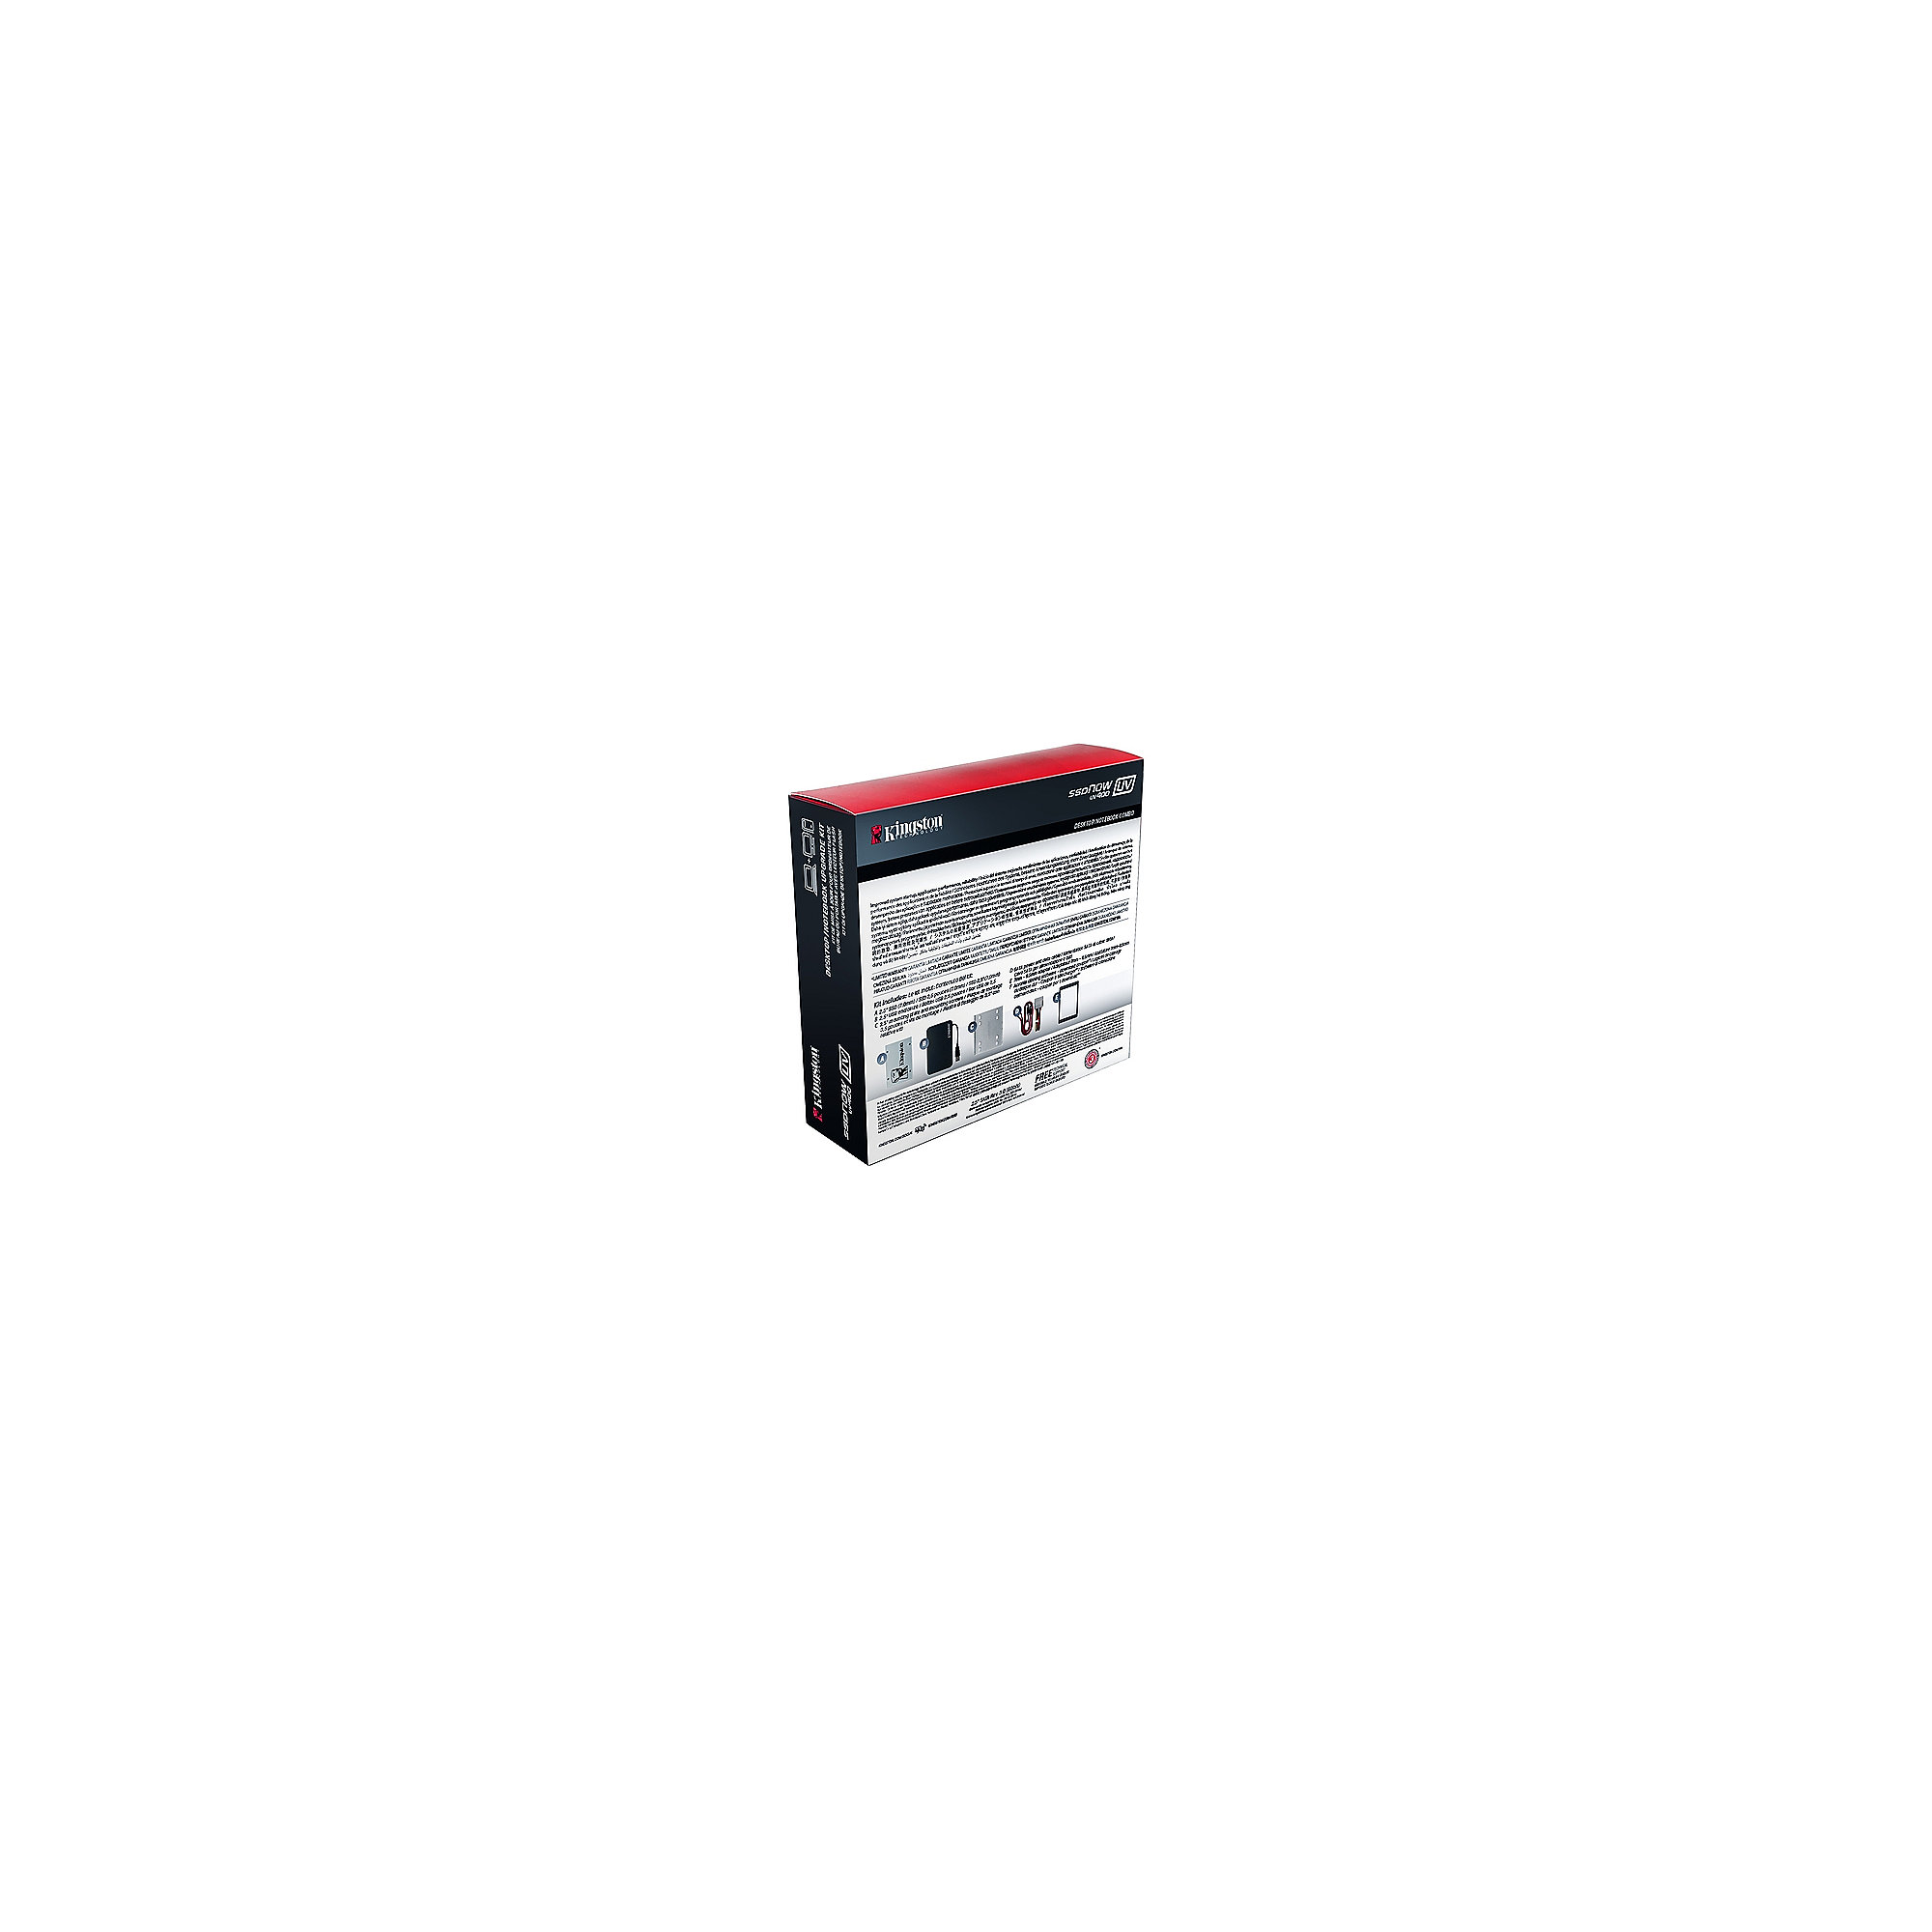 Kingston SSDNow UV400 120GB TLC 2.5zoll SATA600 - 7mm